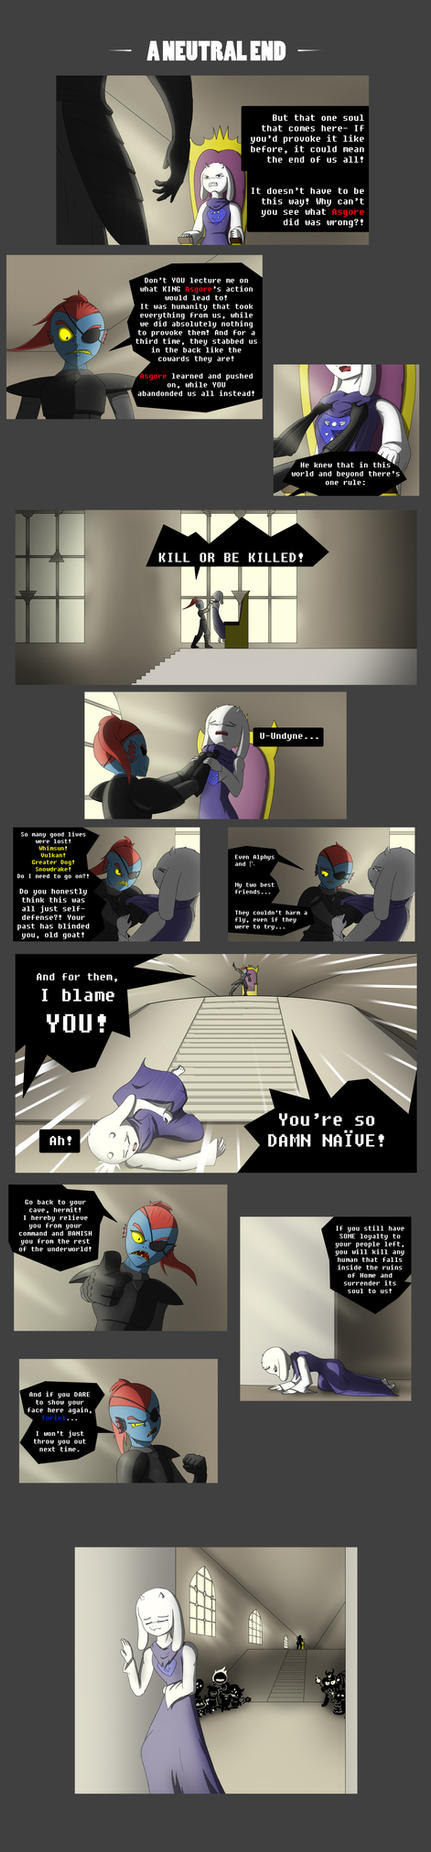 A Neutral end - Part 2/3 by BanditofBandwidth